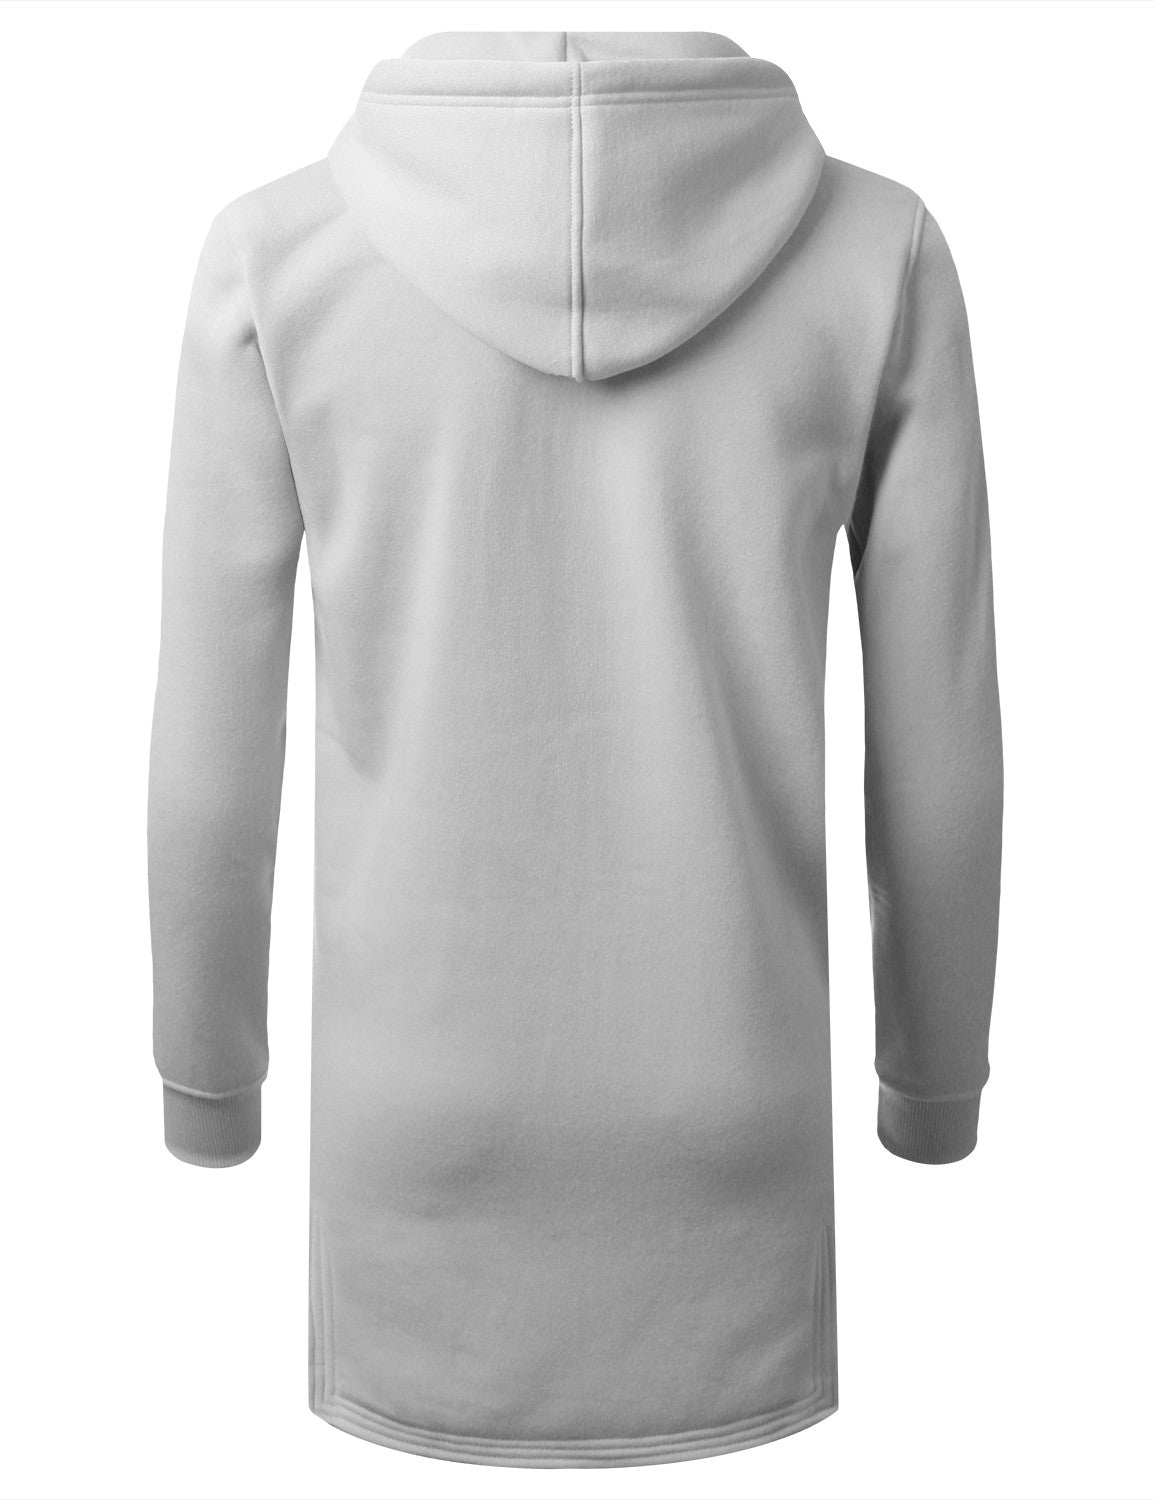 WHITE Zip Down Long Fleece Hoodie Jacket - URBANCREWS